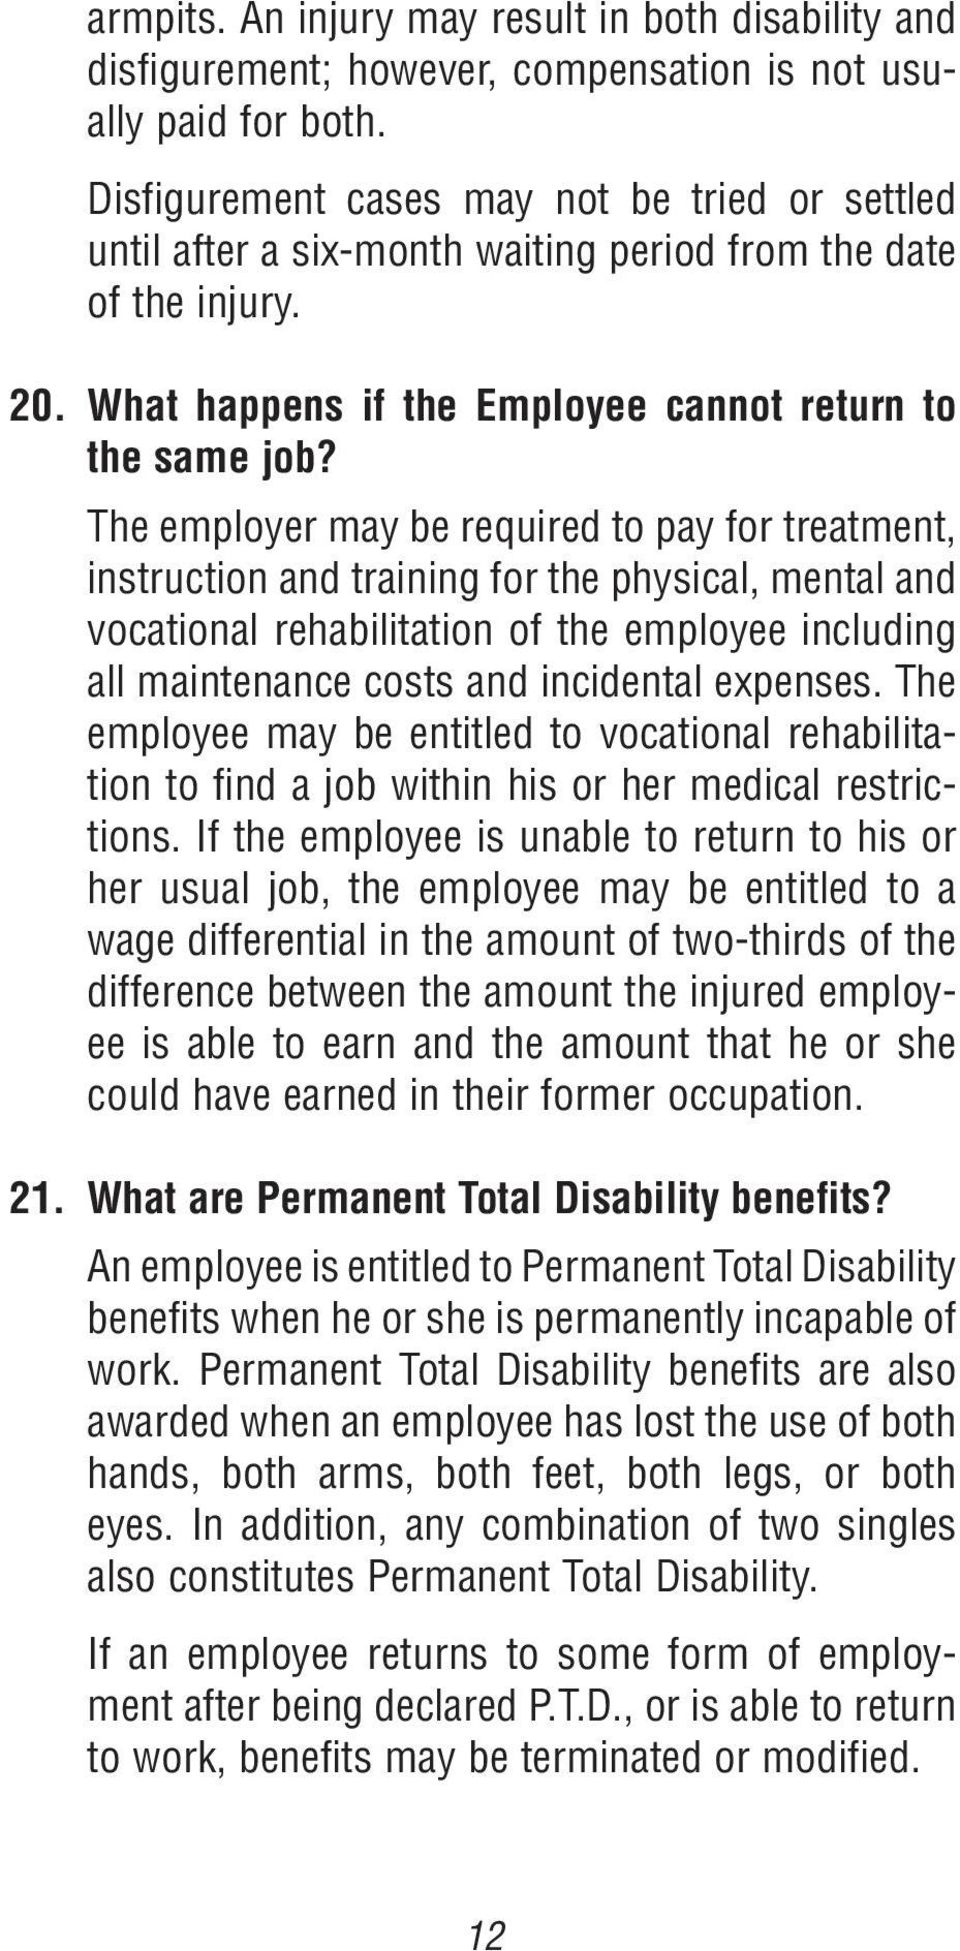 The employer may be required to pay for treatment, instruction and training for the physical, mental and vocational rehabilitation of the employee including all maintenance costs and incidental